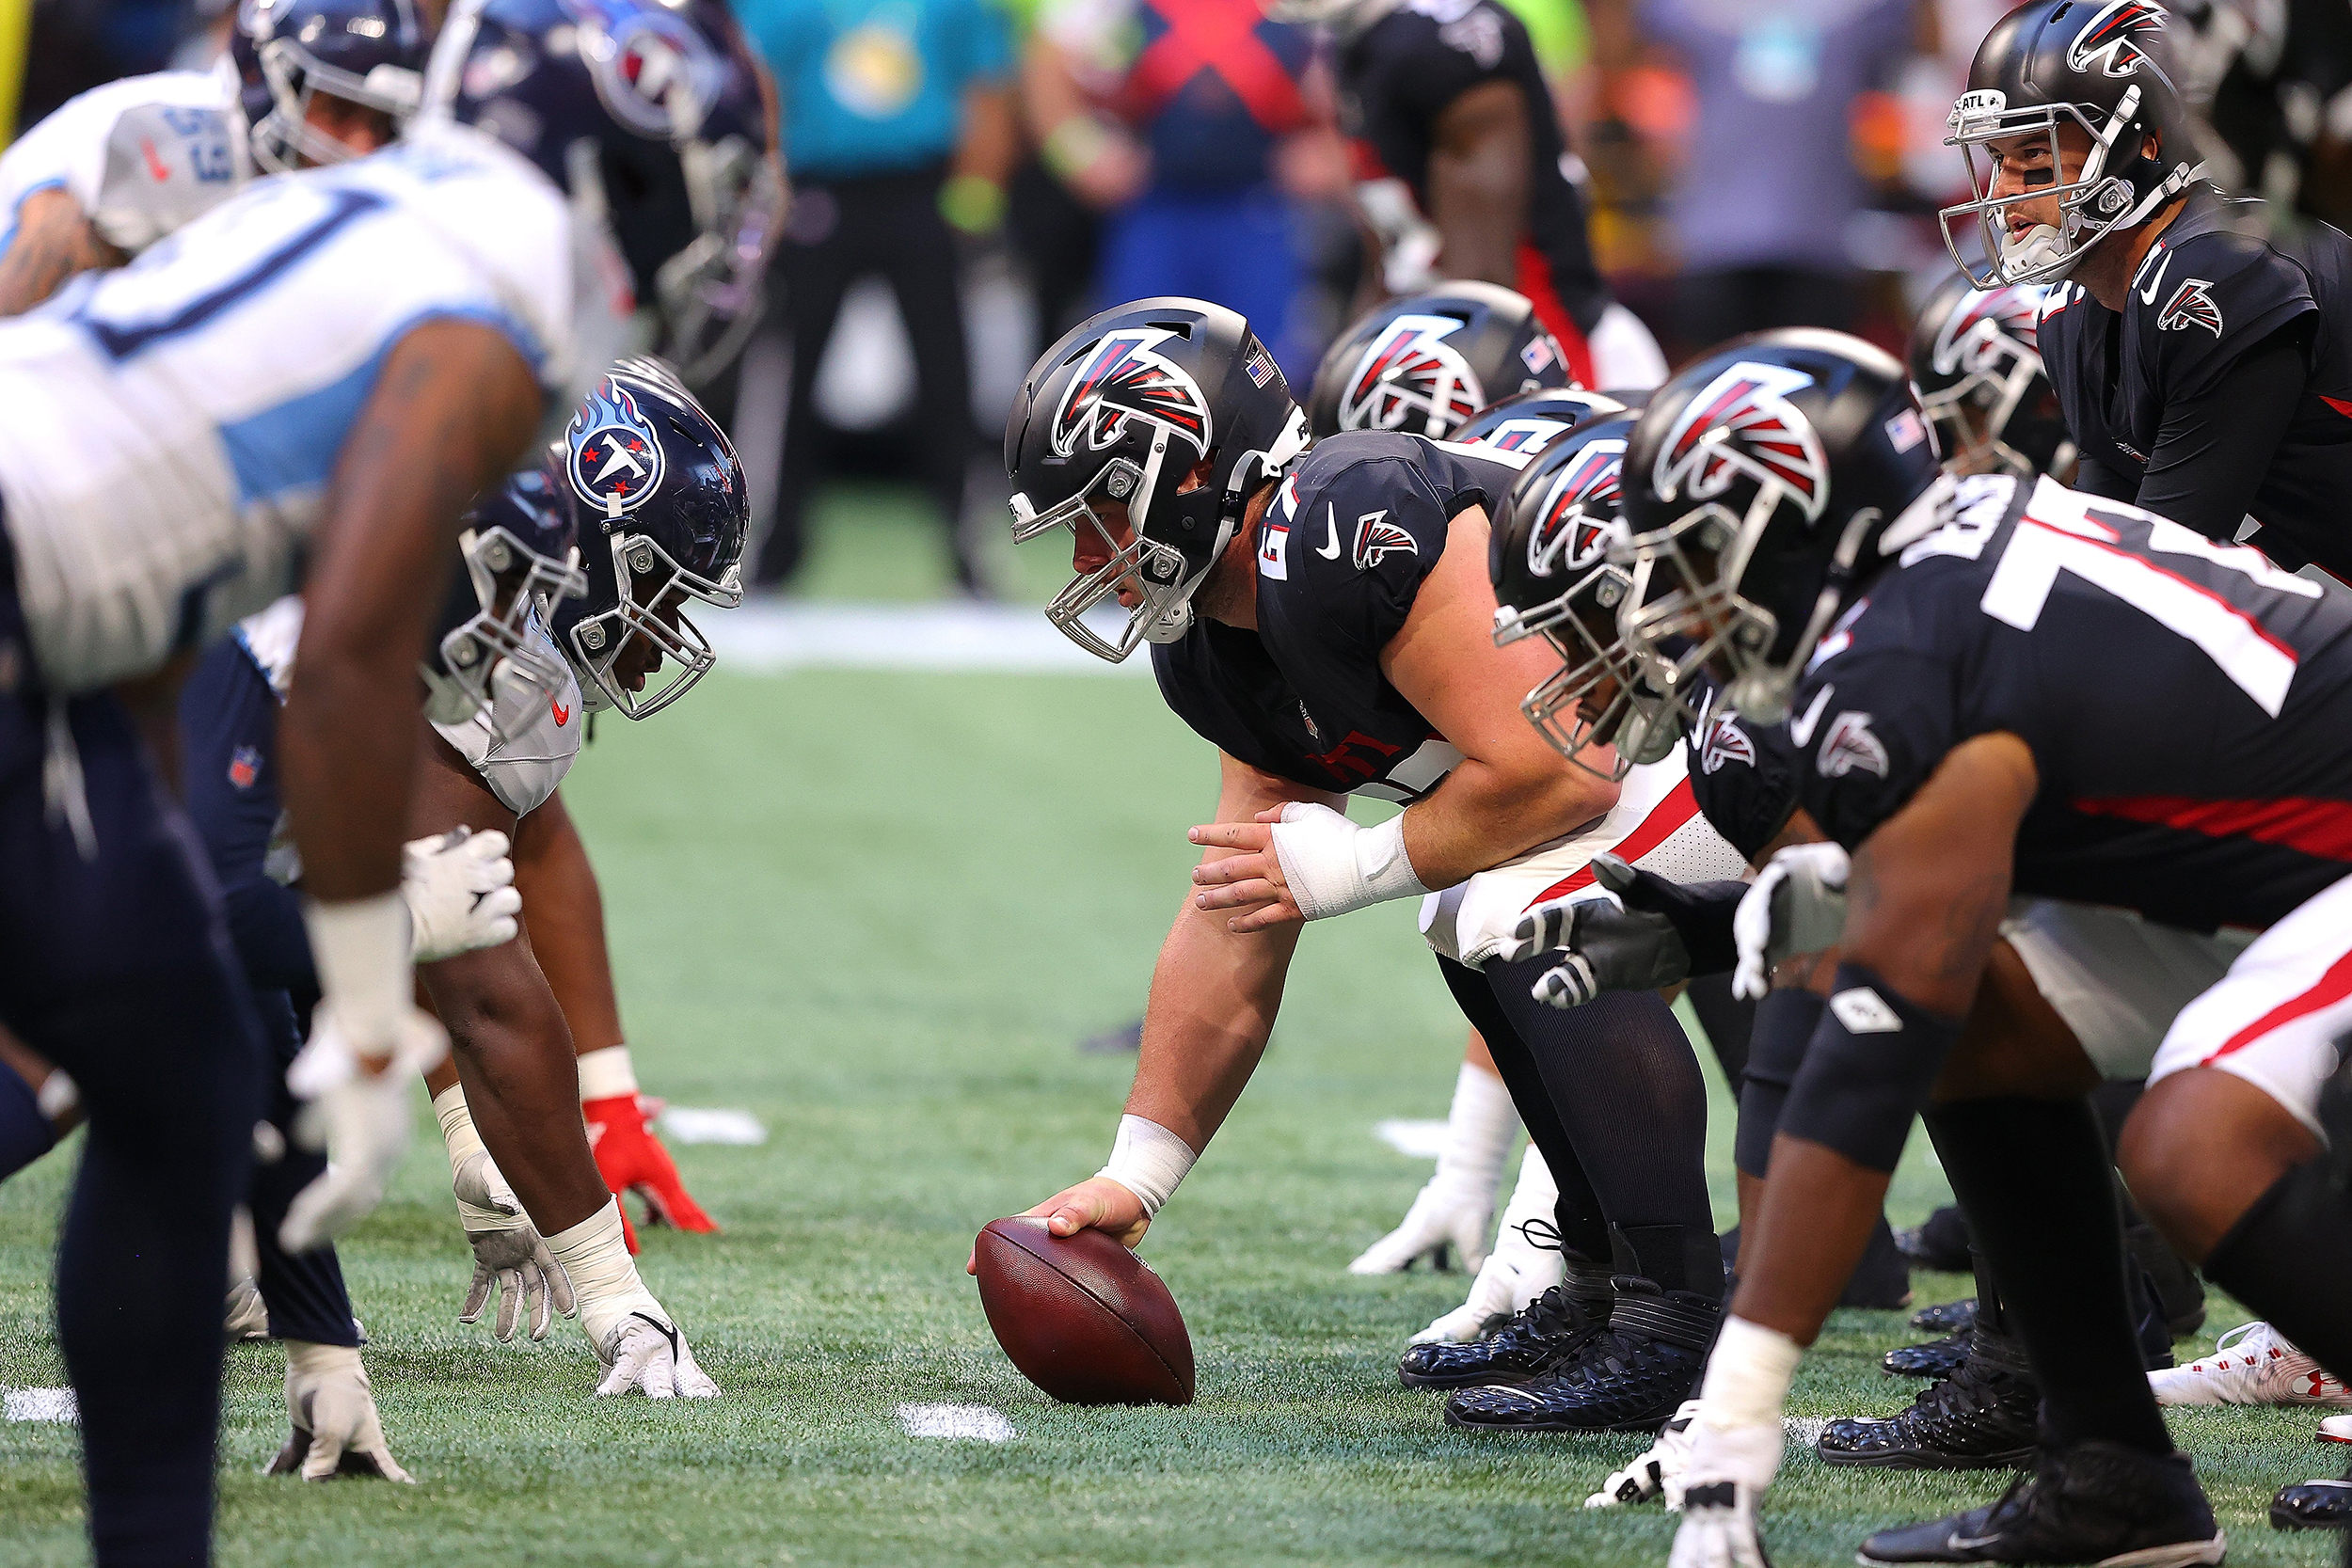 Atlanta Falcons become first NFL team to be 100 percent vaccinated against Covid